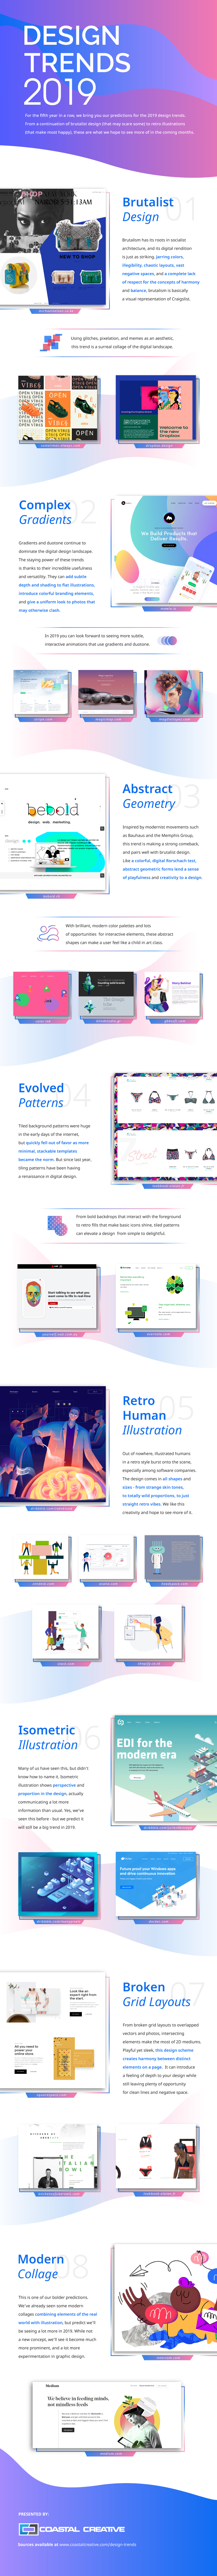 [Infographic] 2019 Website Design Trends